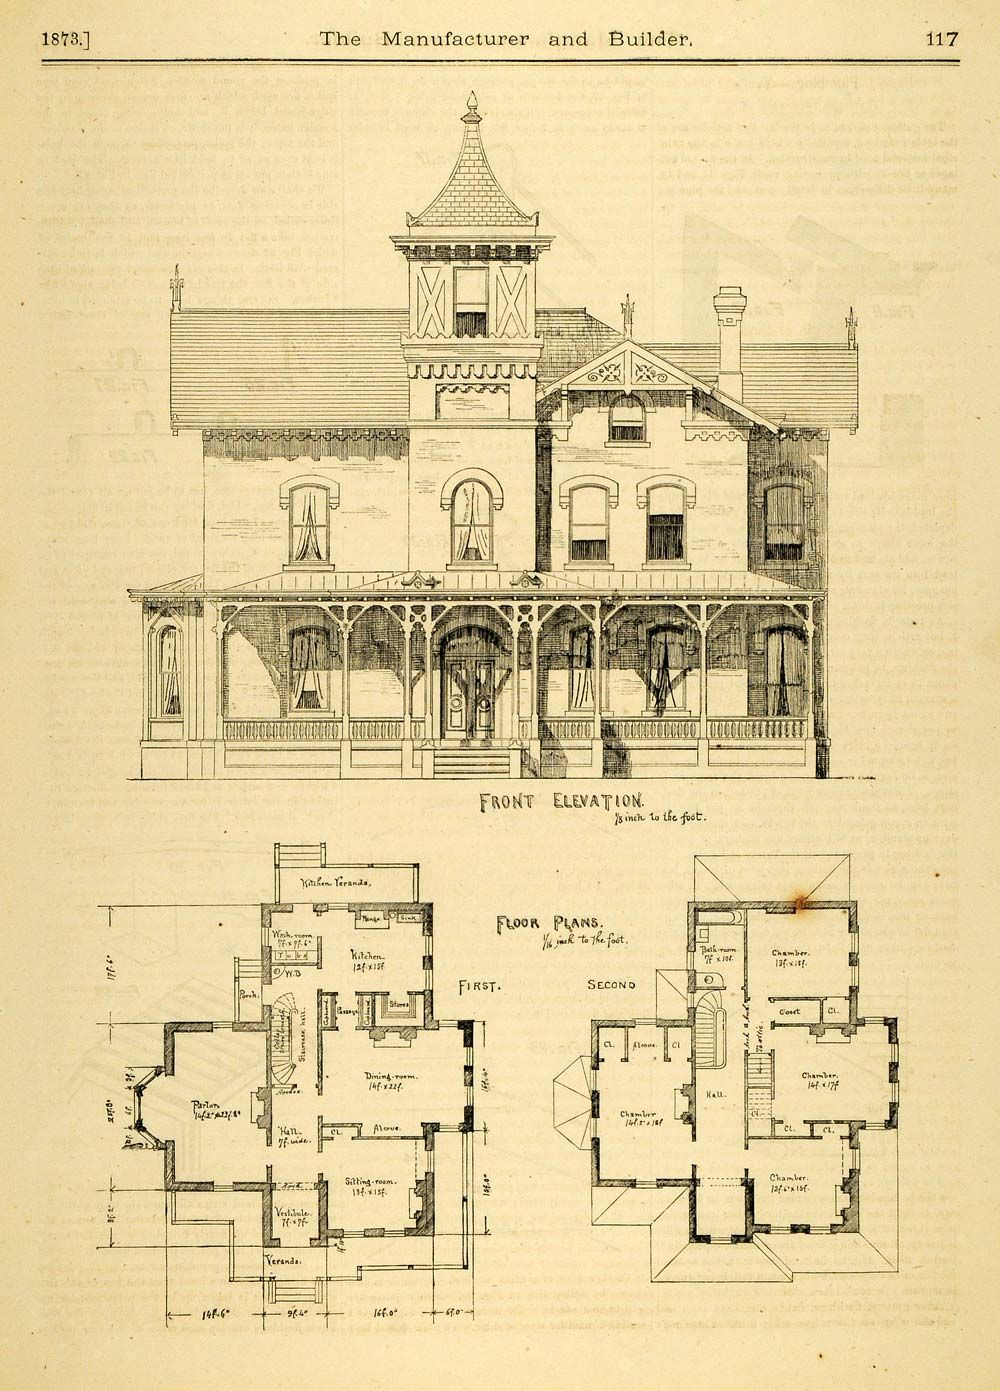 1000+ images about Victorian House Plans on Pinterest - ^